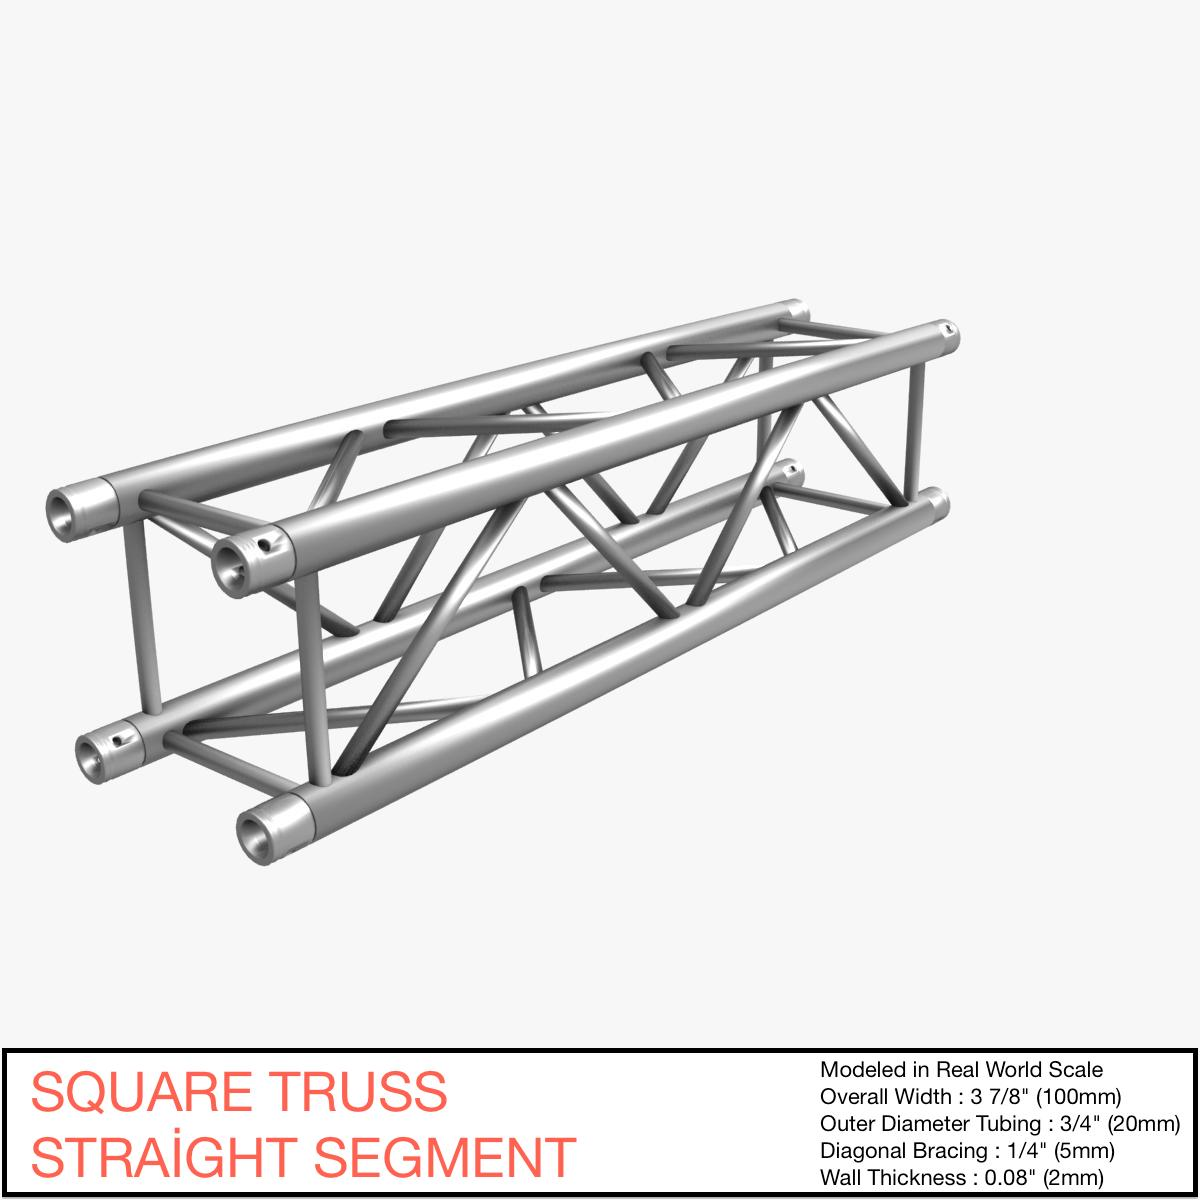 square truss straight segment 21 3d model 3ds max dxf fbx b3d c4d  268911